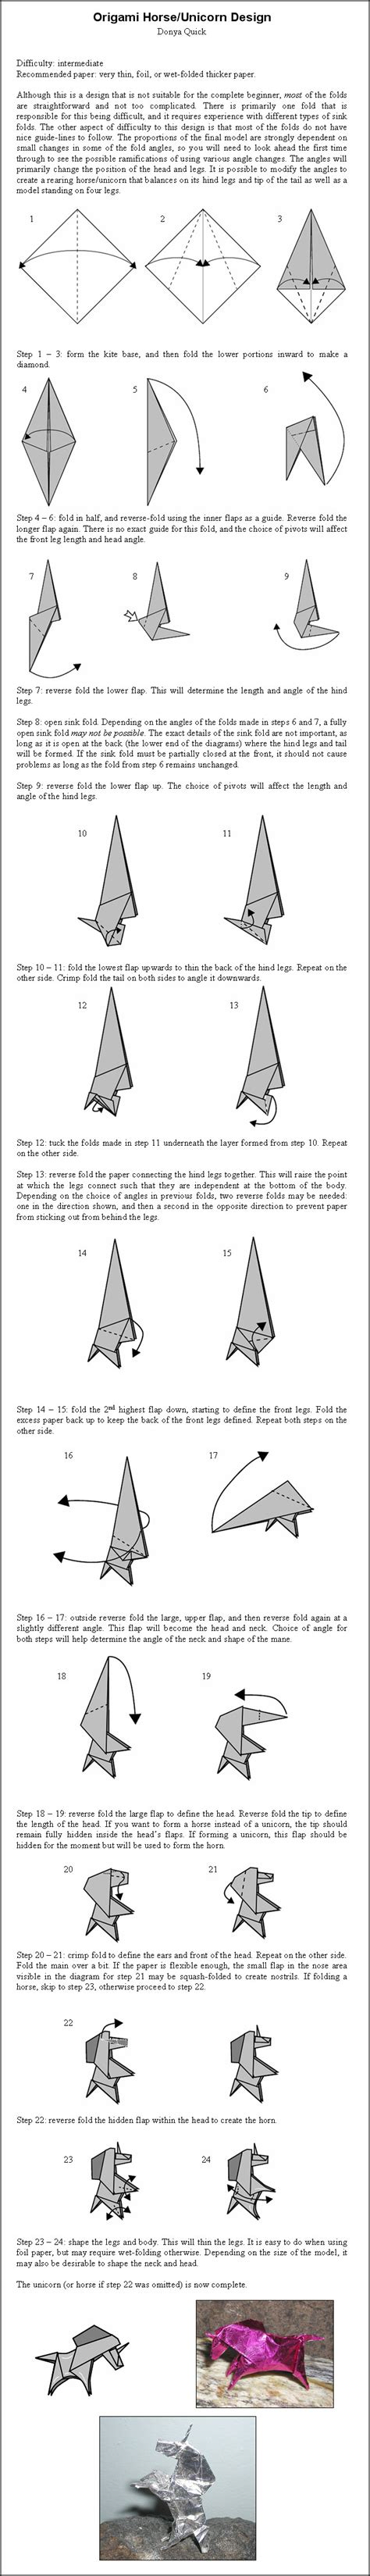 How To Make Paper Unicorn - a duchess nonethelesss unicorn origami